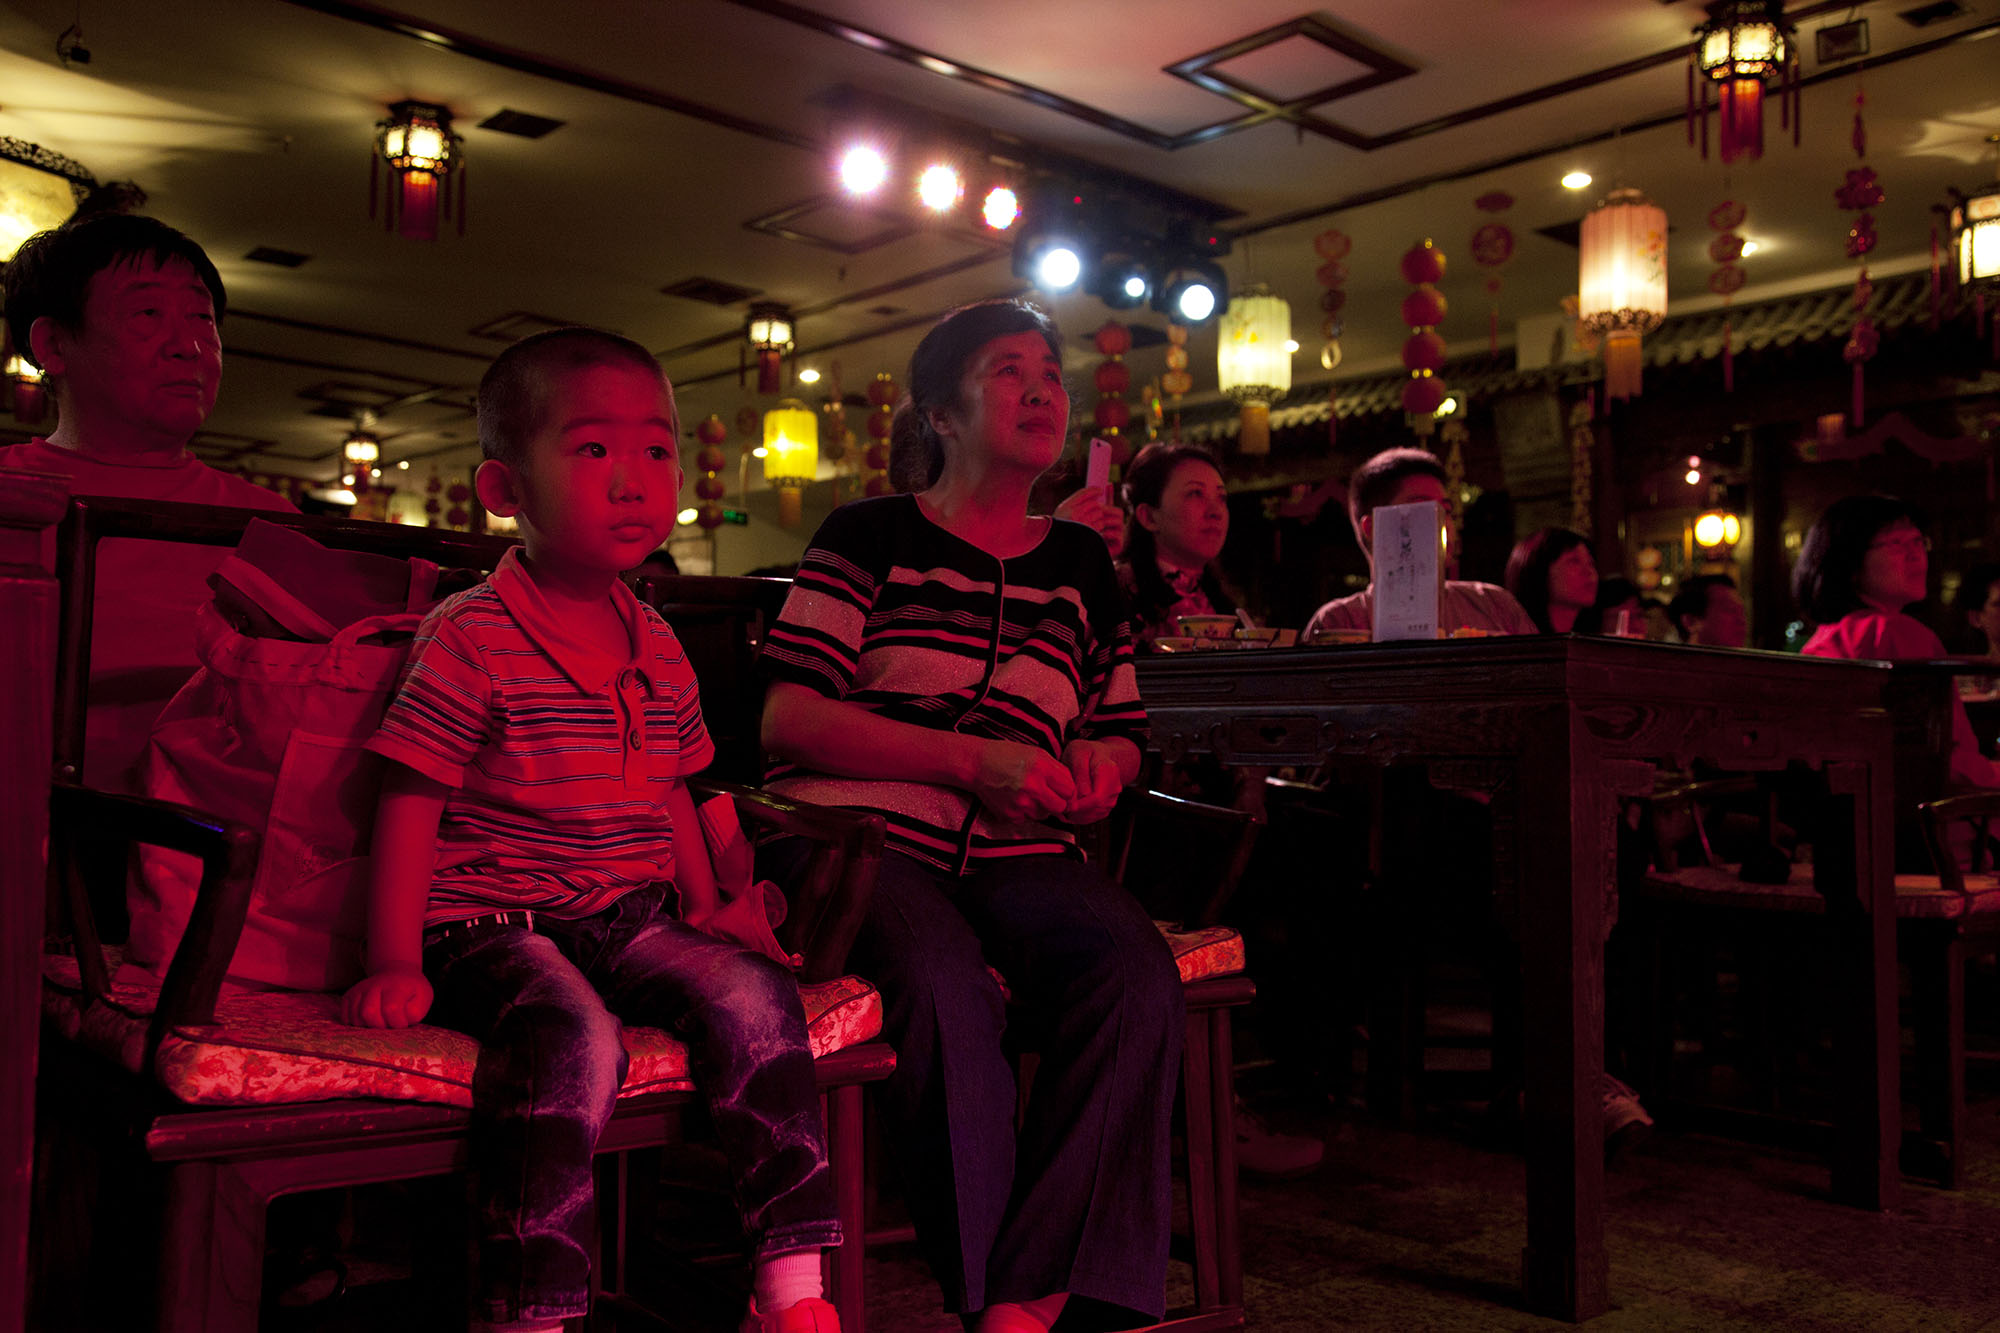 A young member of the audience watches the show at Laoshe teahouse.